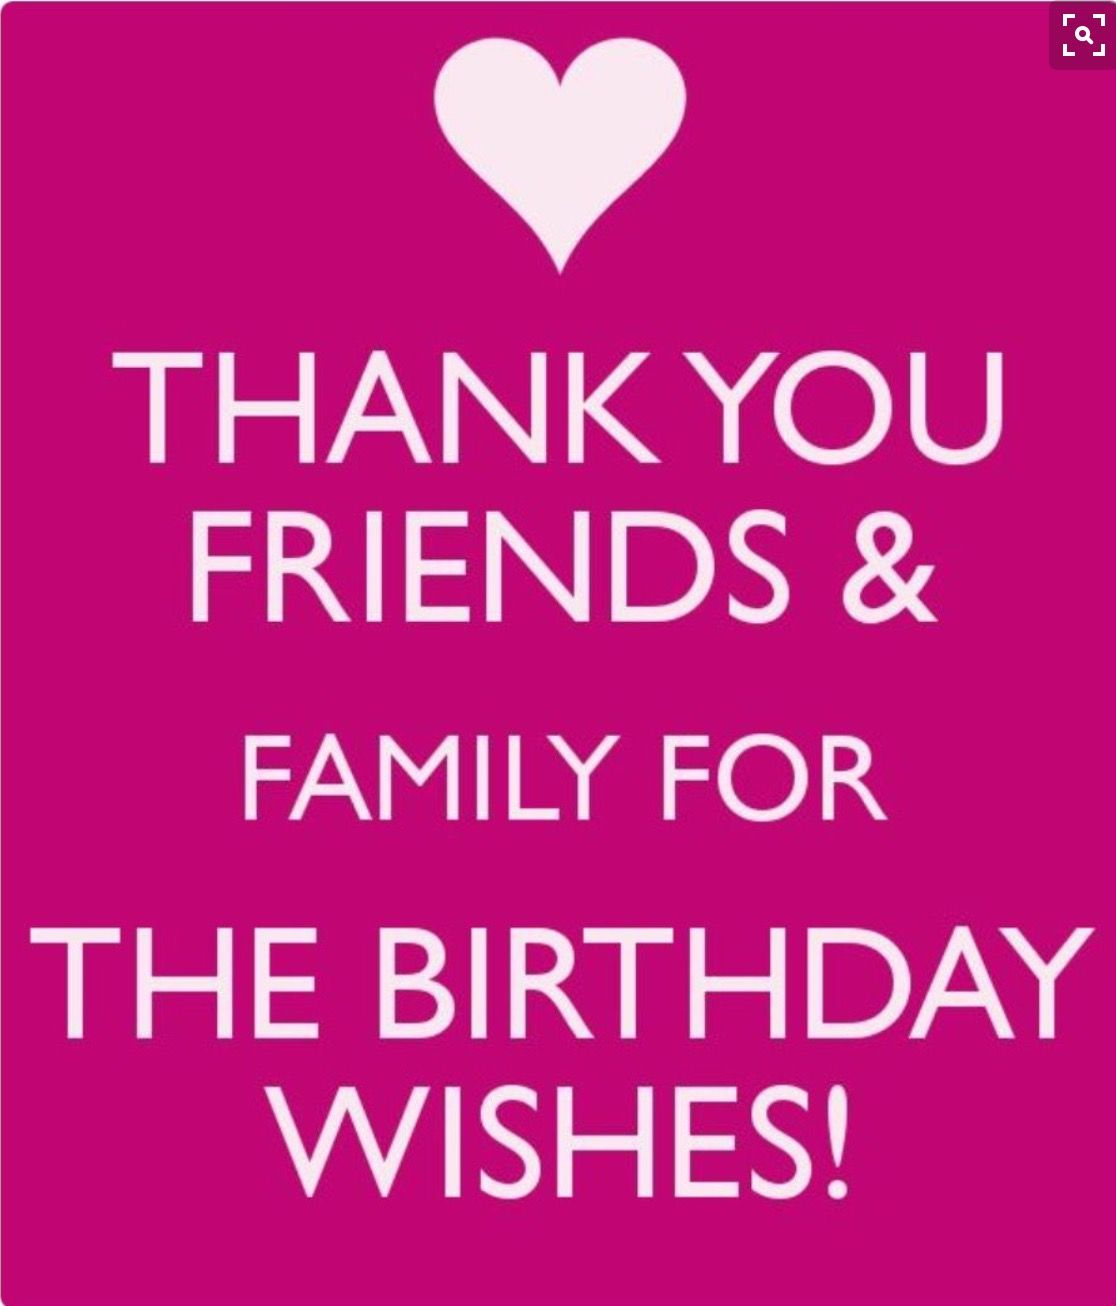 Pin by paulette adamski on birthday wishes pinterest birthdays thank you for all the birthday wishes kristyandbryce Choice Image